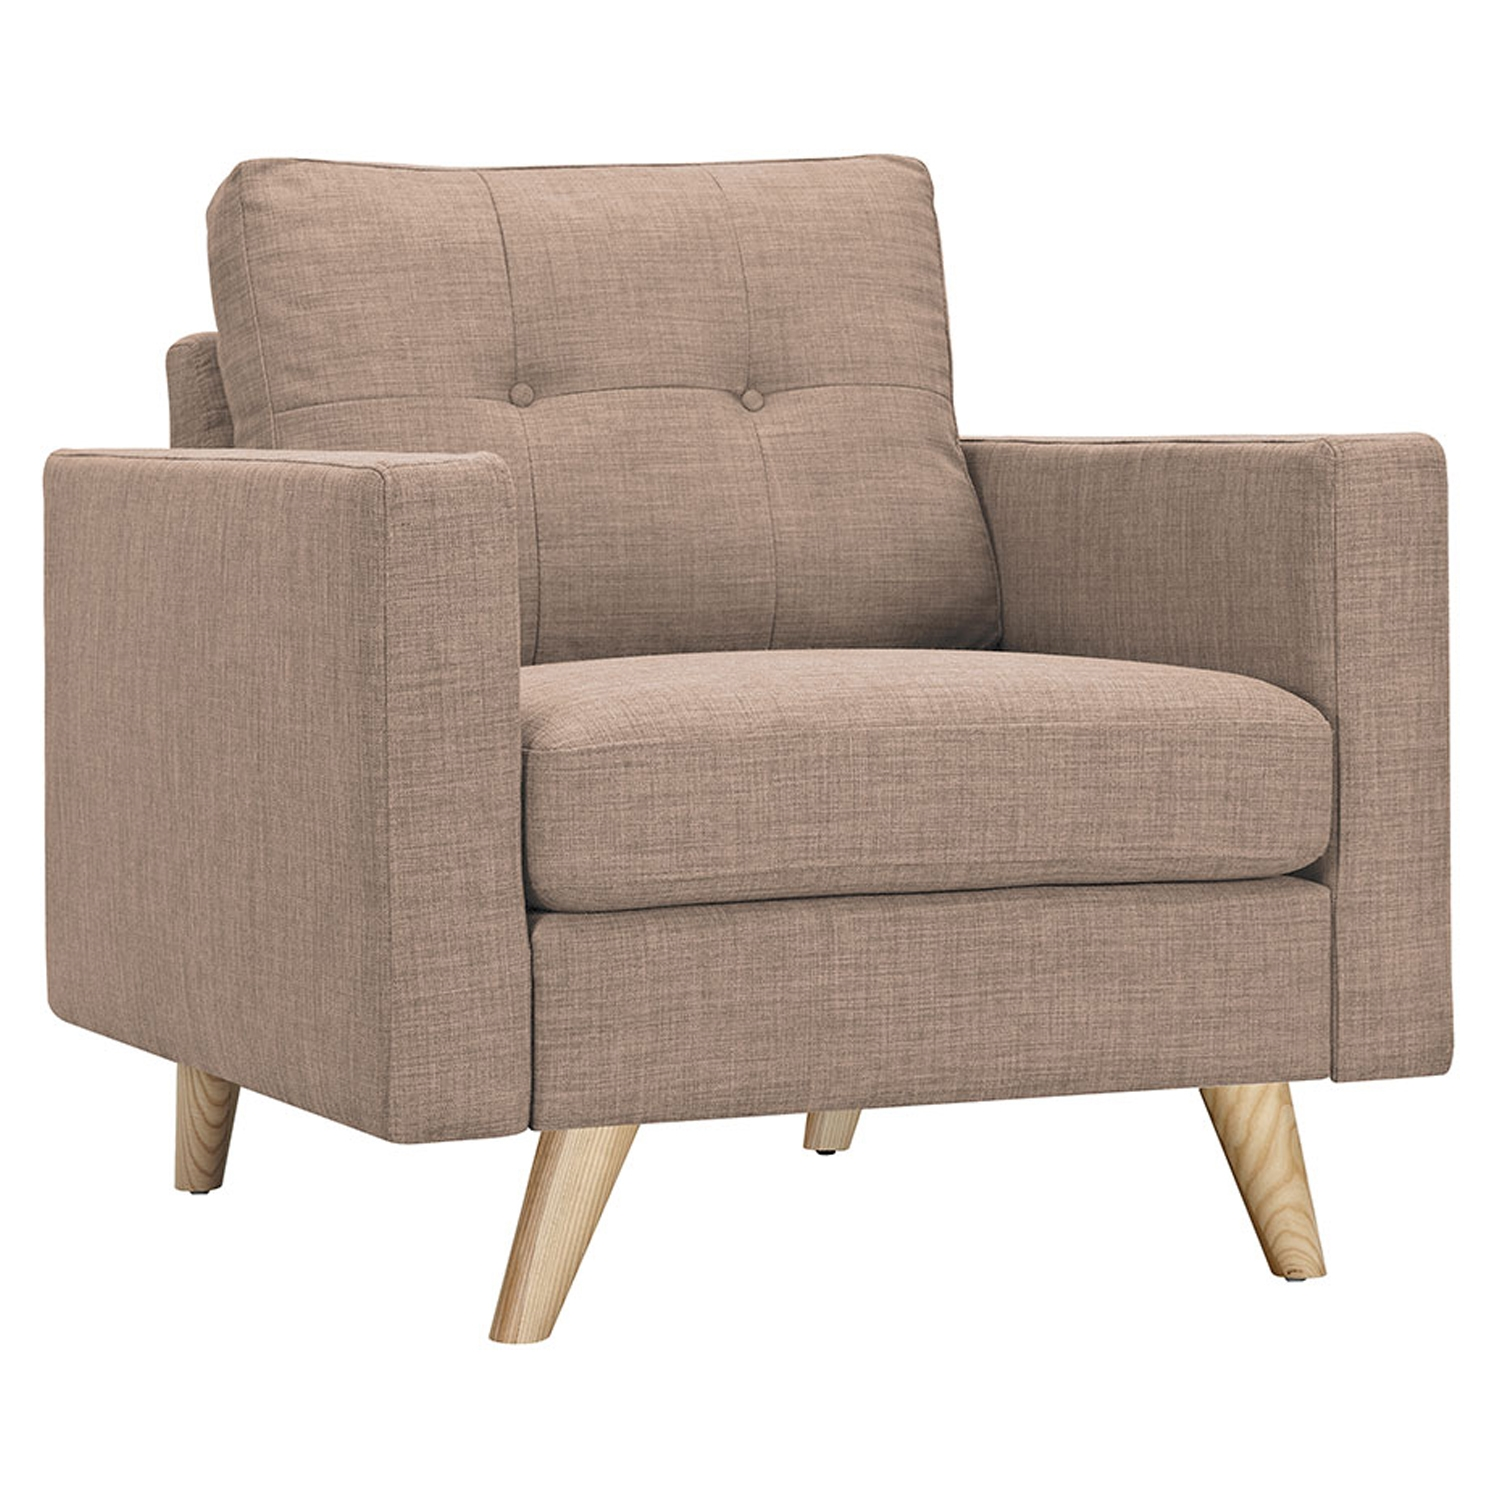 Uma Armchair - Light Sand, Button Tufted